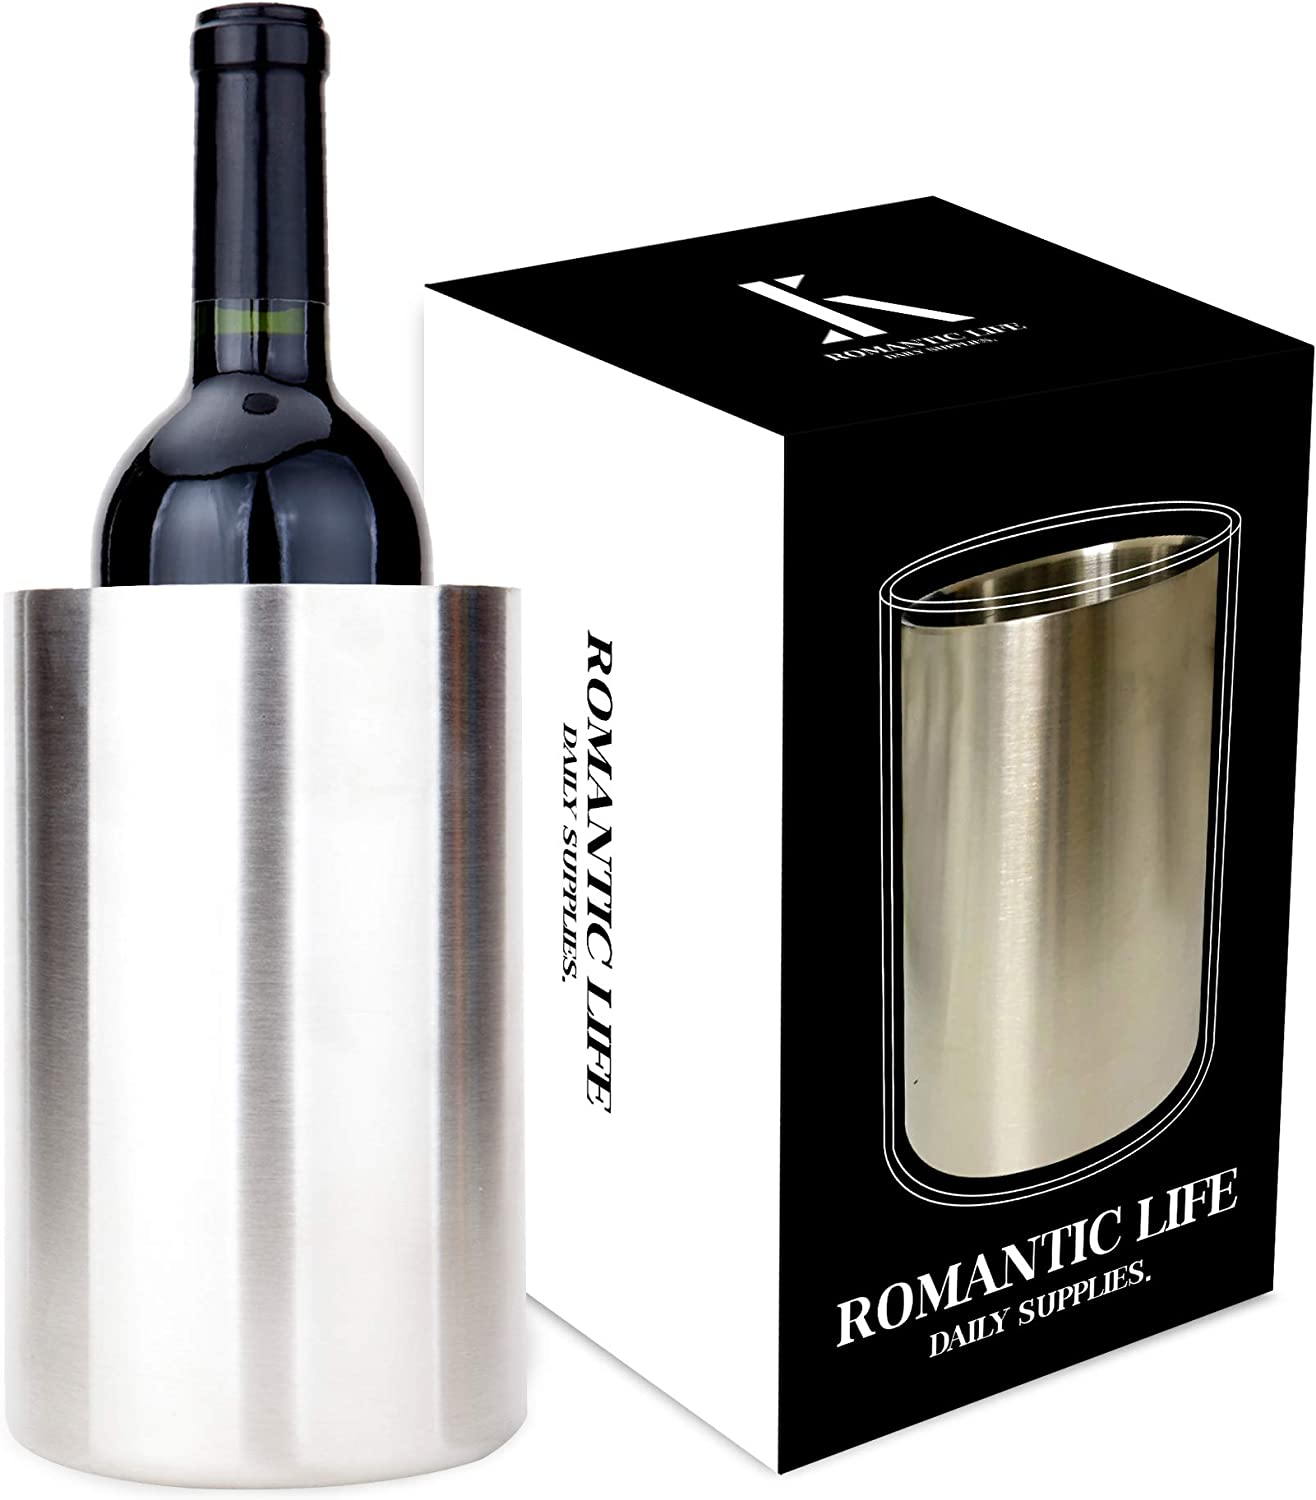 Romantic Life Wine Chiller Bucket Insulating Wine Cooler Bucket Ice Wine Temperature Keeper 750ml Wine Bottle Champagne Bottle Stainless Steel Wine Champagne Bucket For Parties Amazon Co Uk Kitchen Home